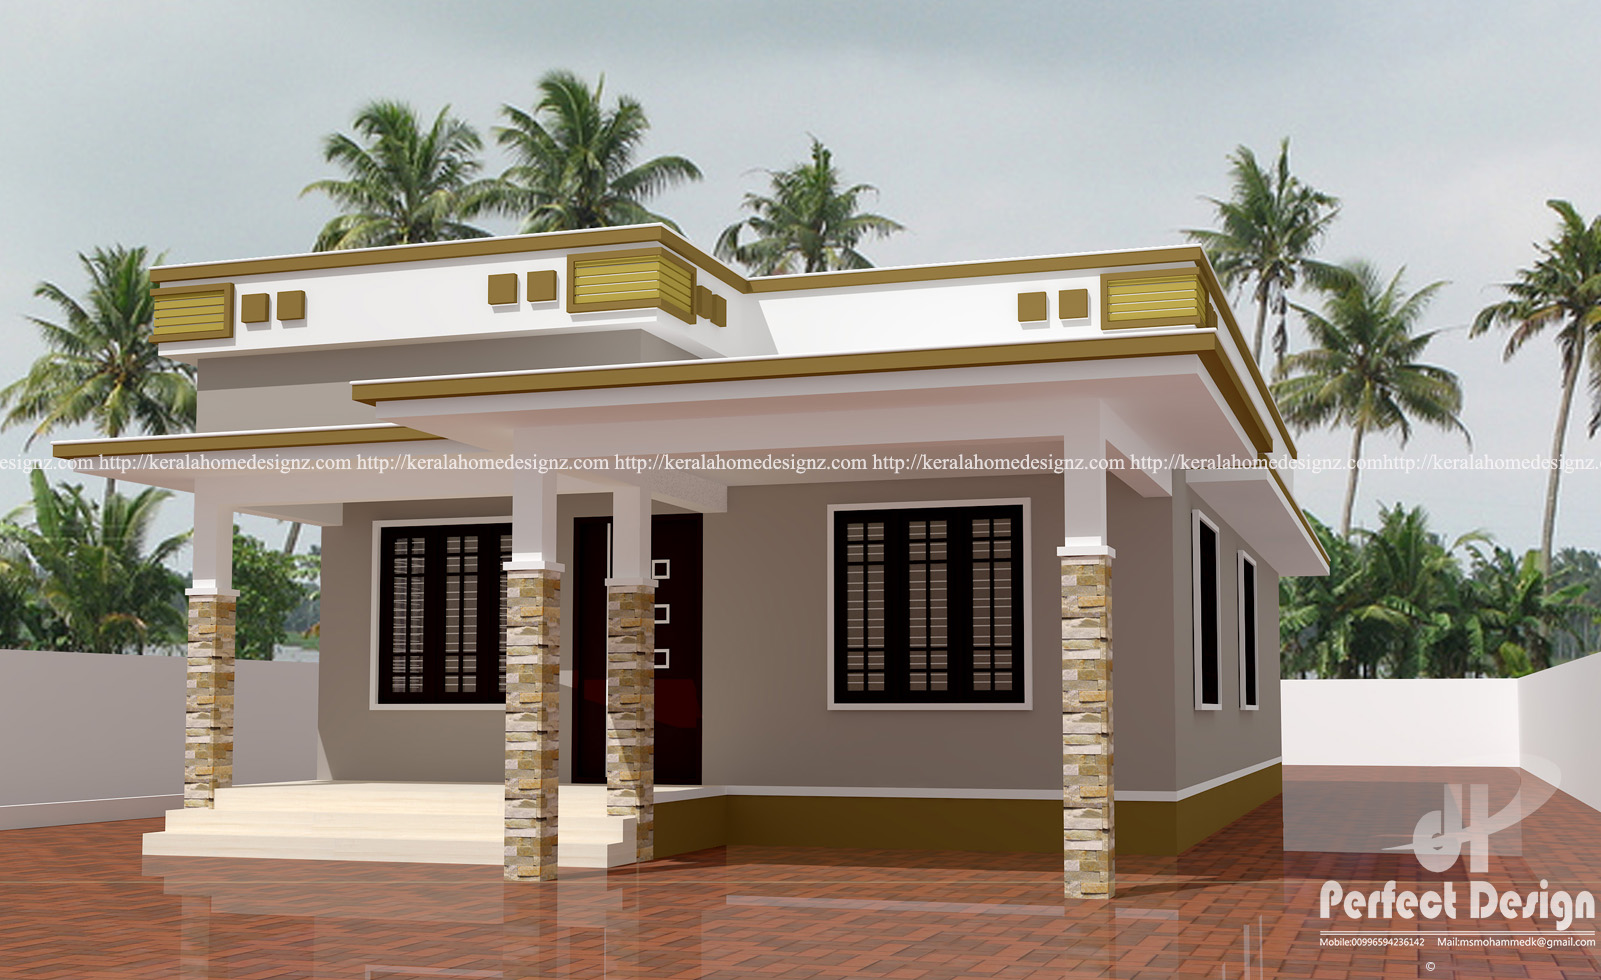 Simple contemporary home design kerala home design Simple home designs photos